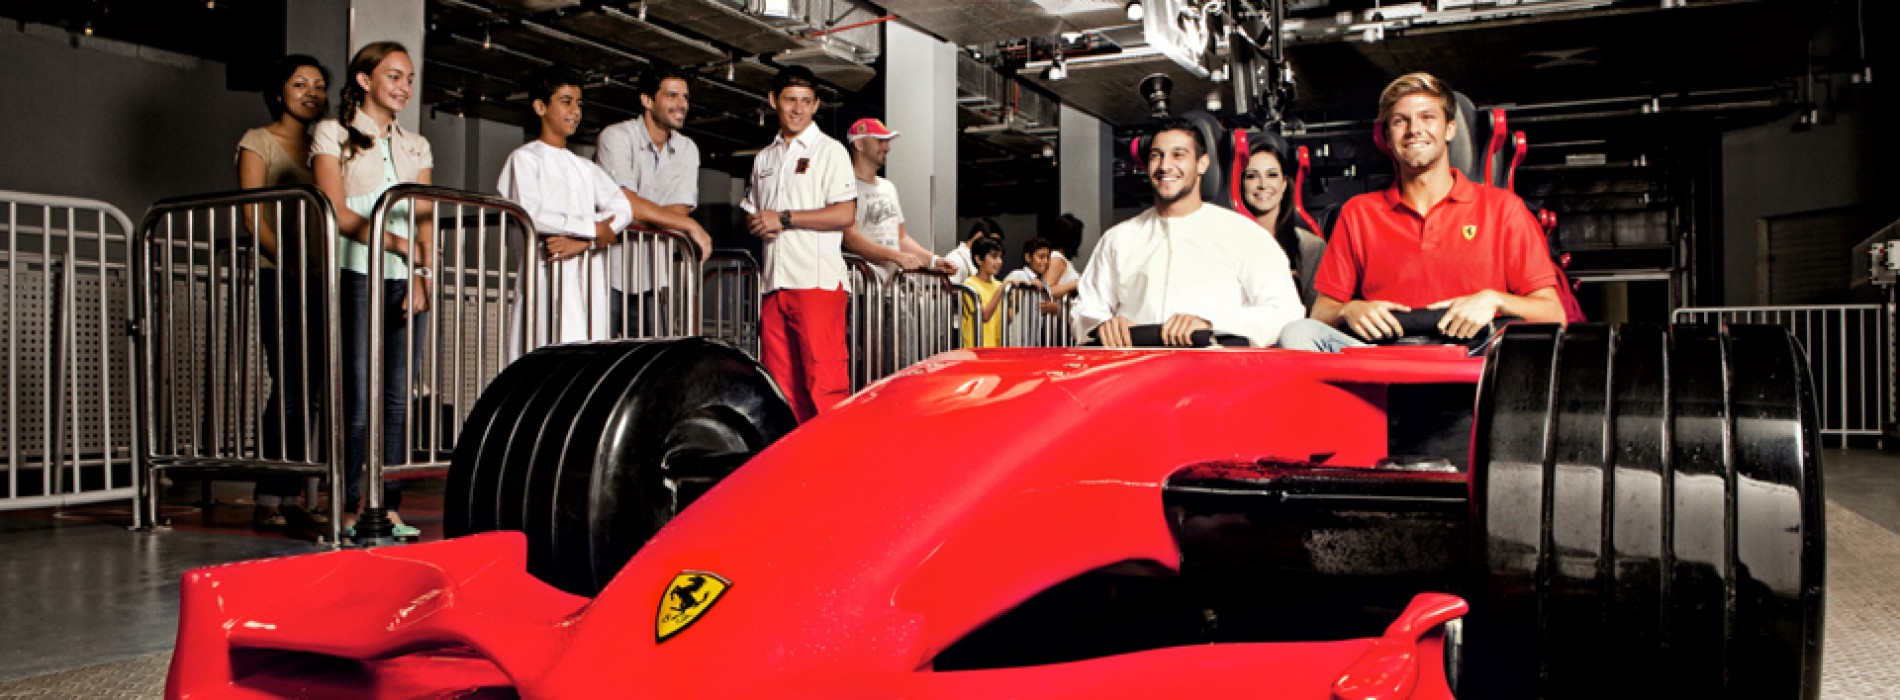 Abu Dhabi rides high with global tourist attraction